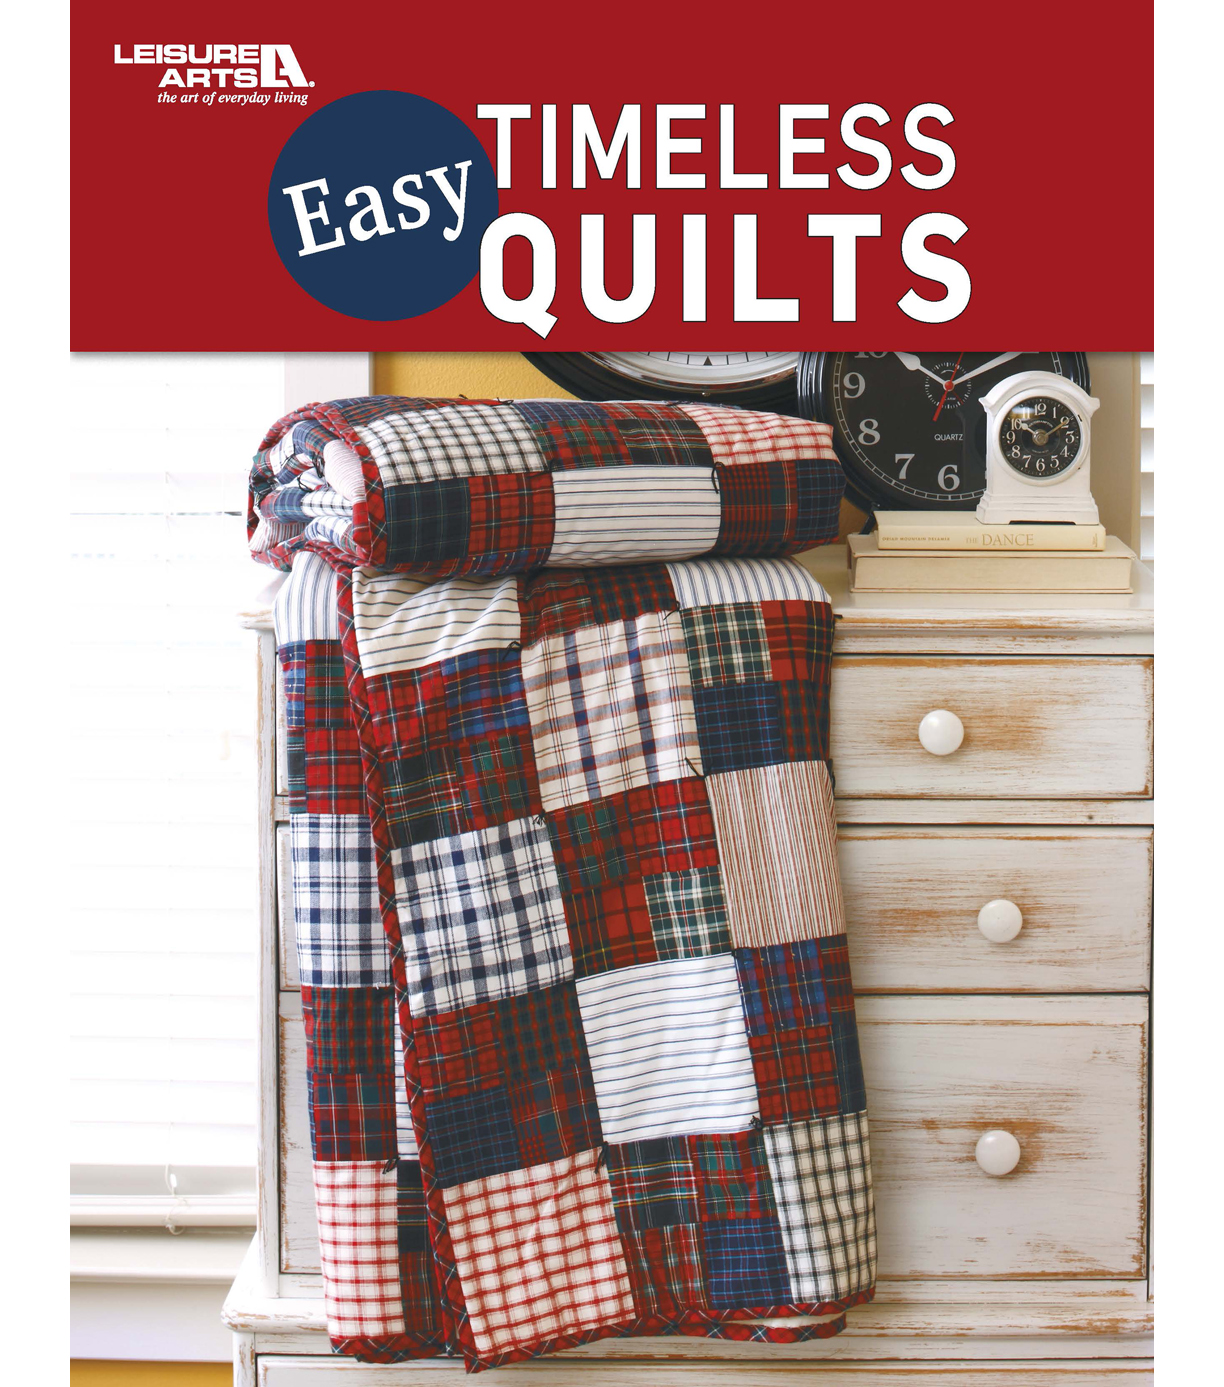 Easy Timeless Quilts Book